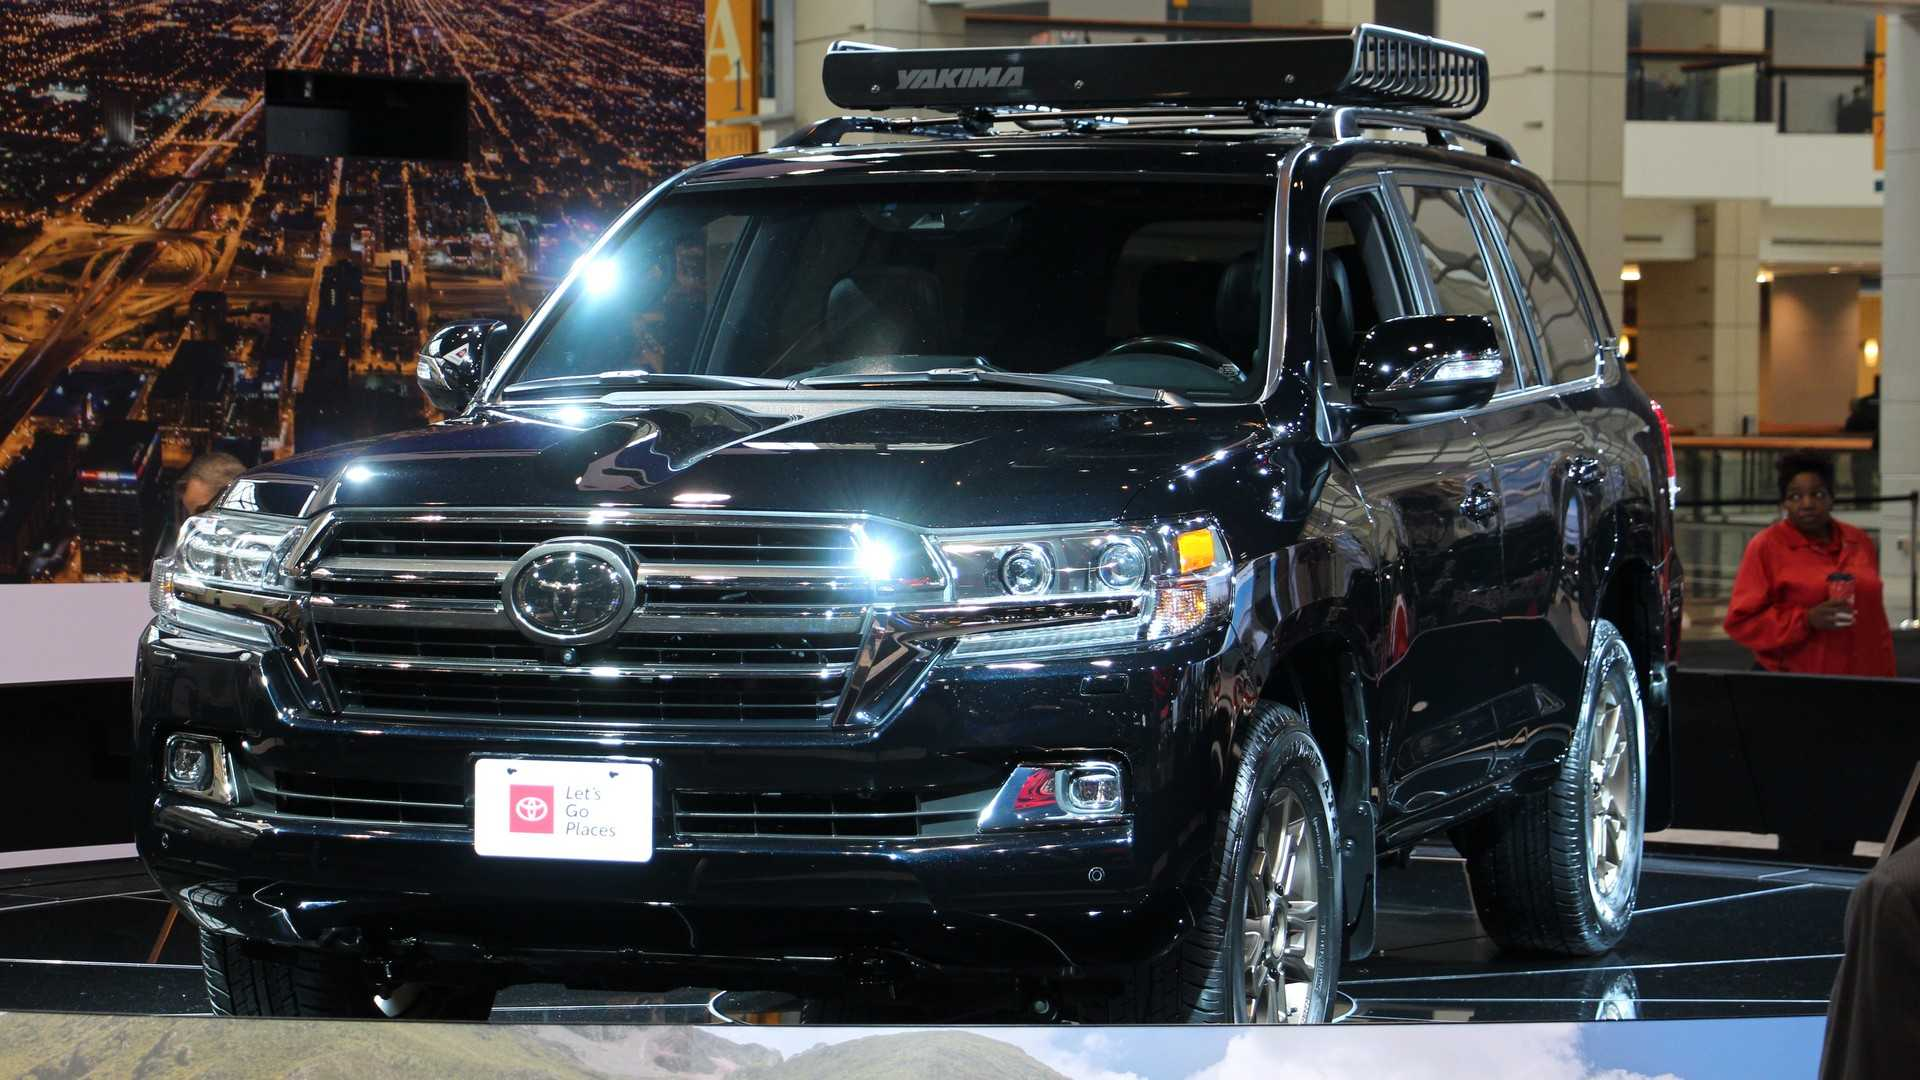 51 Best Toyota Land Cruiser 2020 Model History